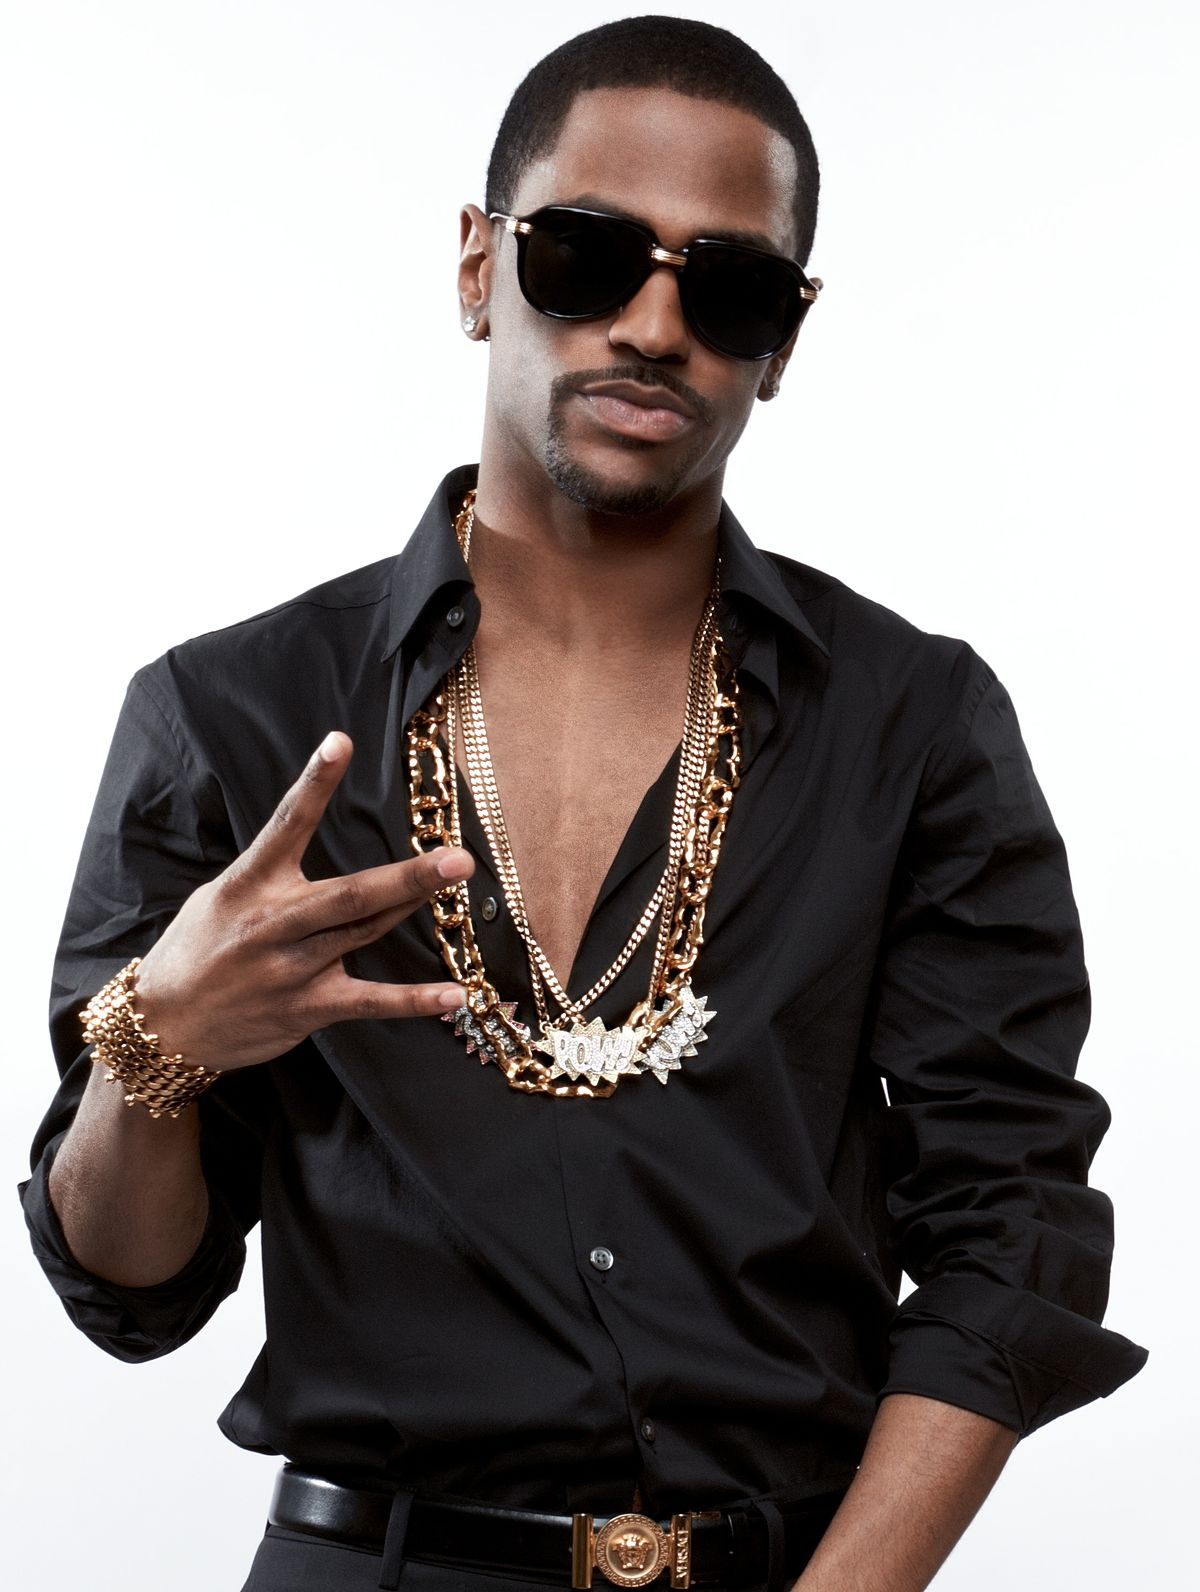 big sean - photo #30